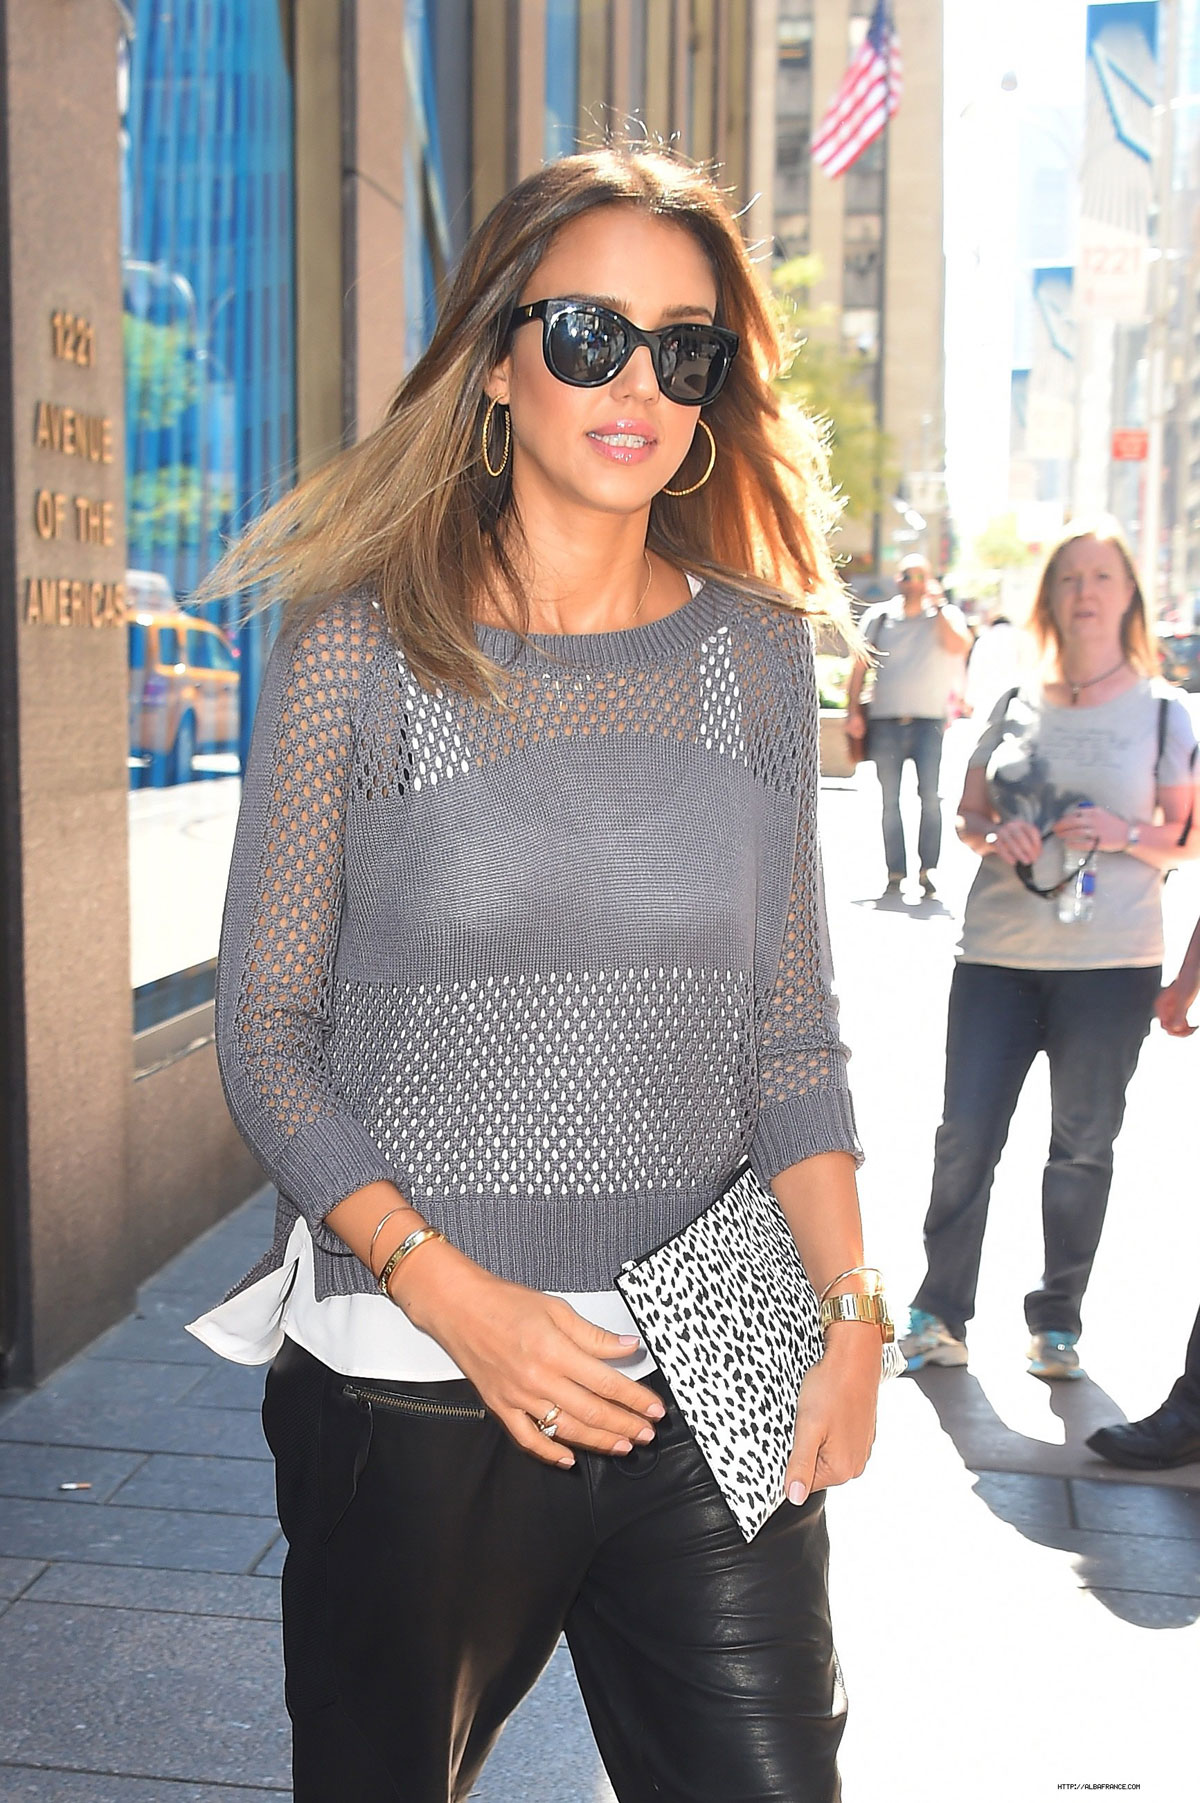 Jessica Alba arriving at SiriusXM Studio in NYC